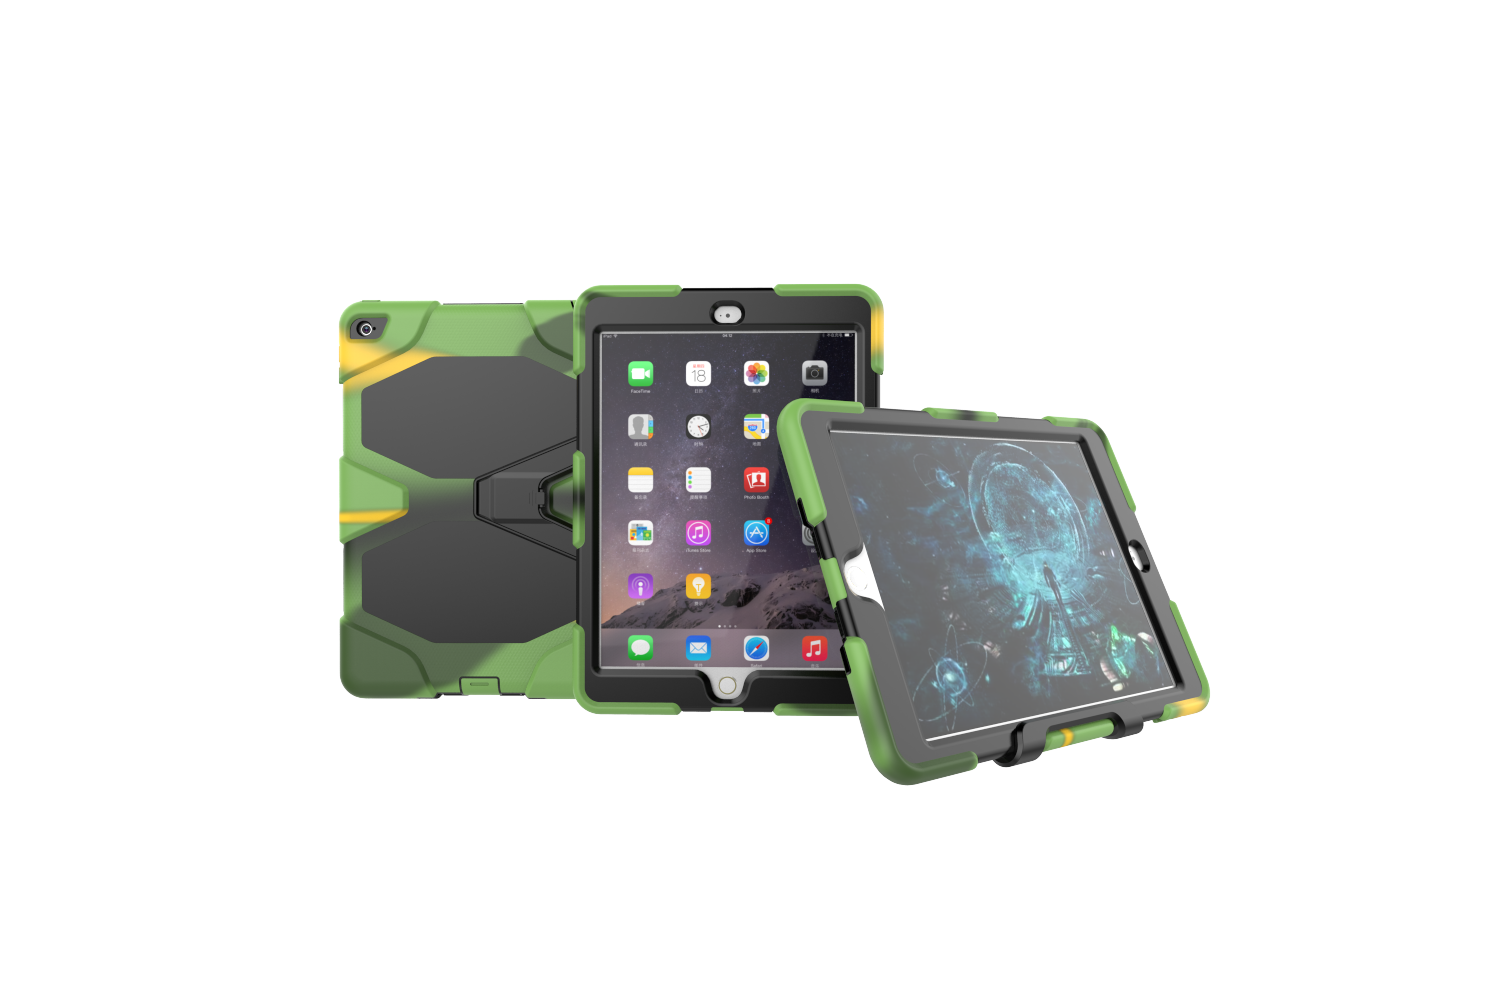 iPad Air 2 heavy duty survivor case leger kleur